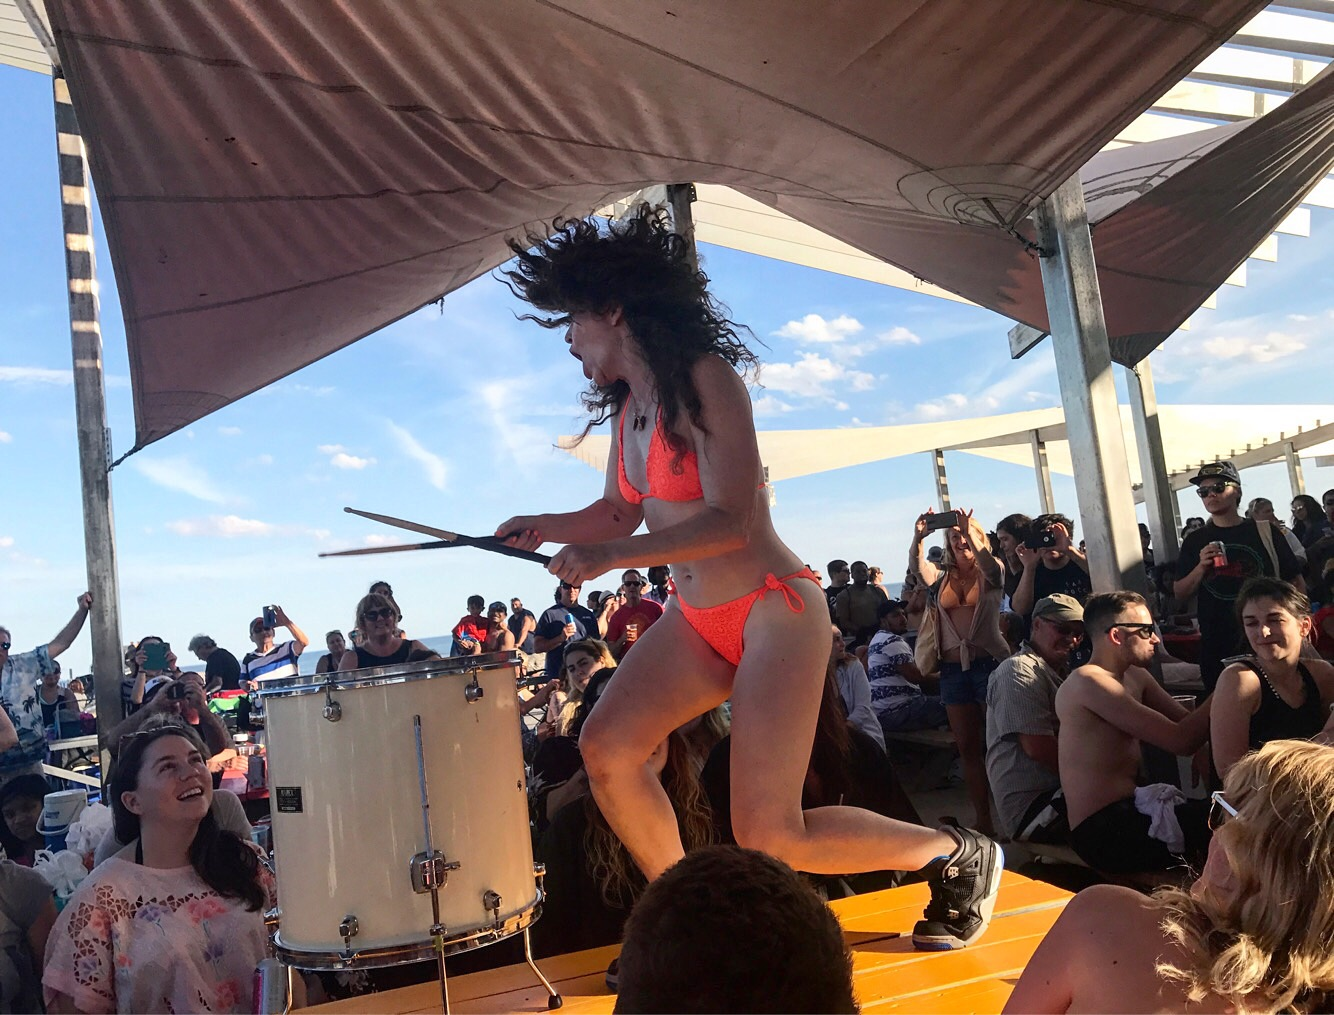 The-Naked-Heroes-Rippers-RockawayBeach-2017.jpg